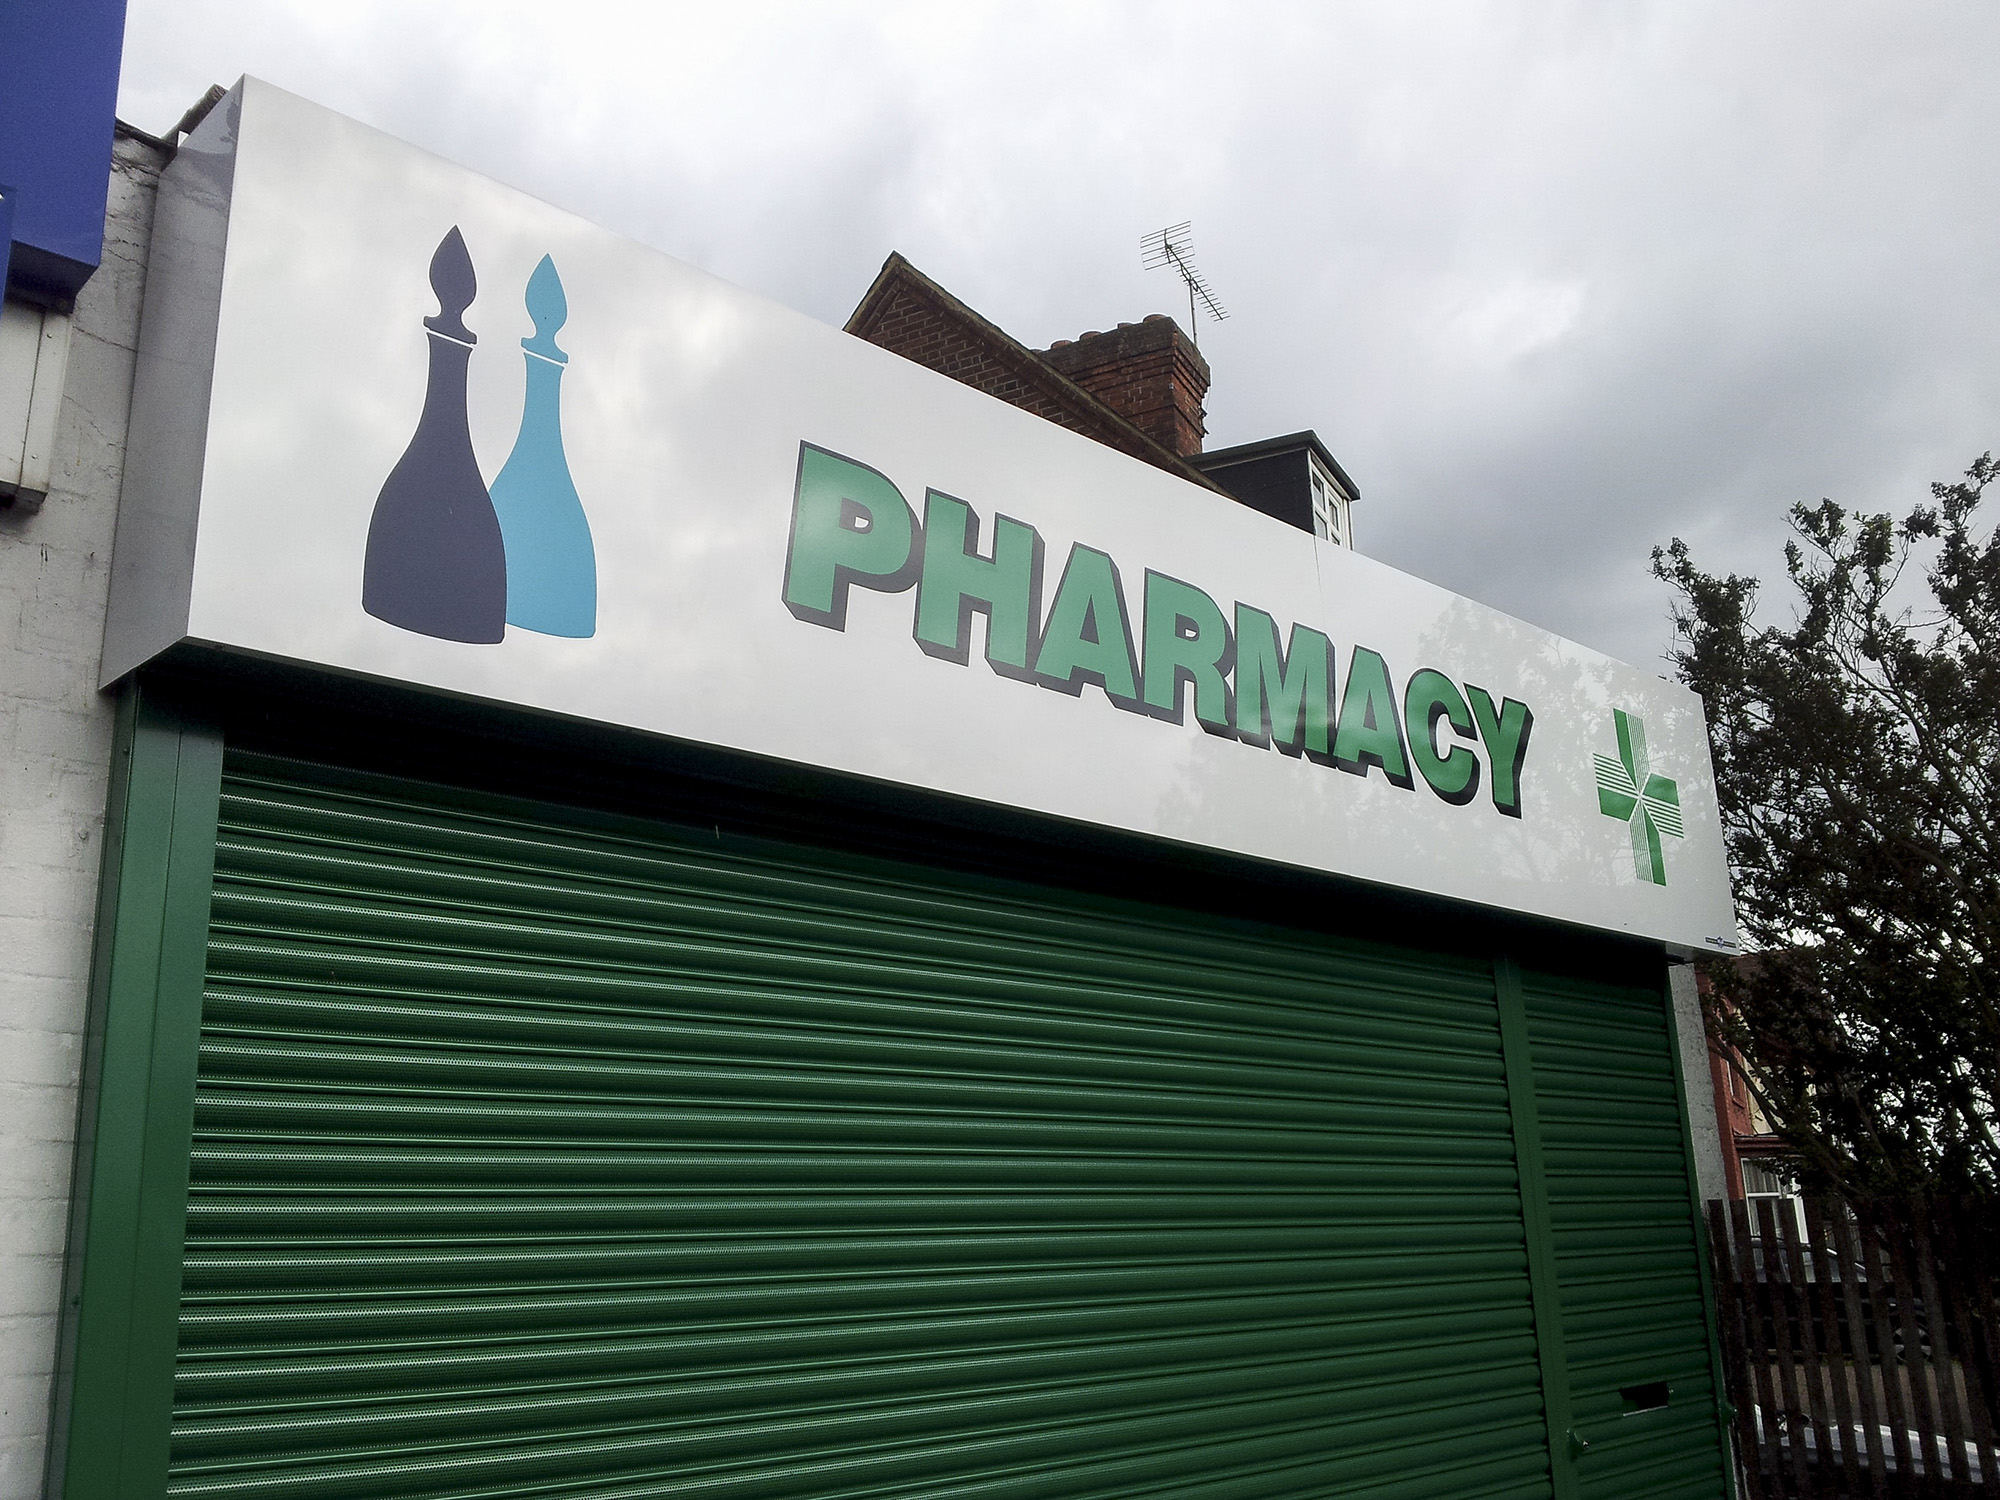 McParland's Pharmacy Langley - composite aluminium sheet sign